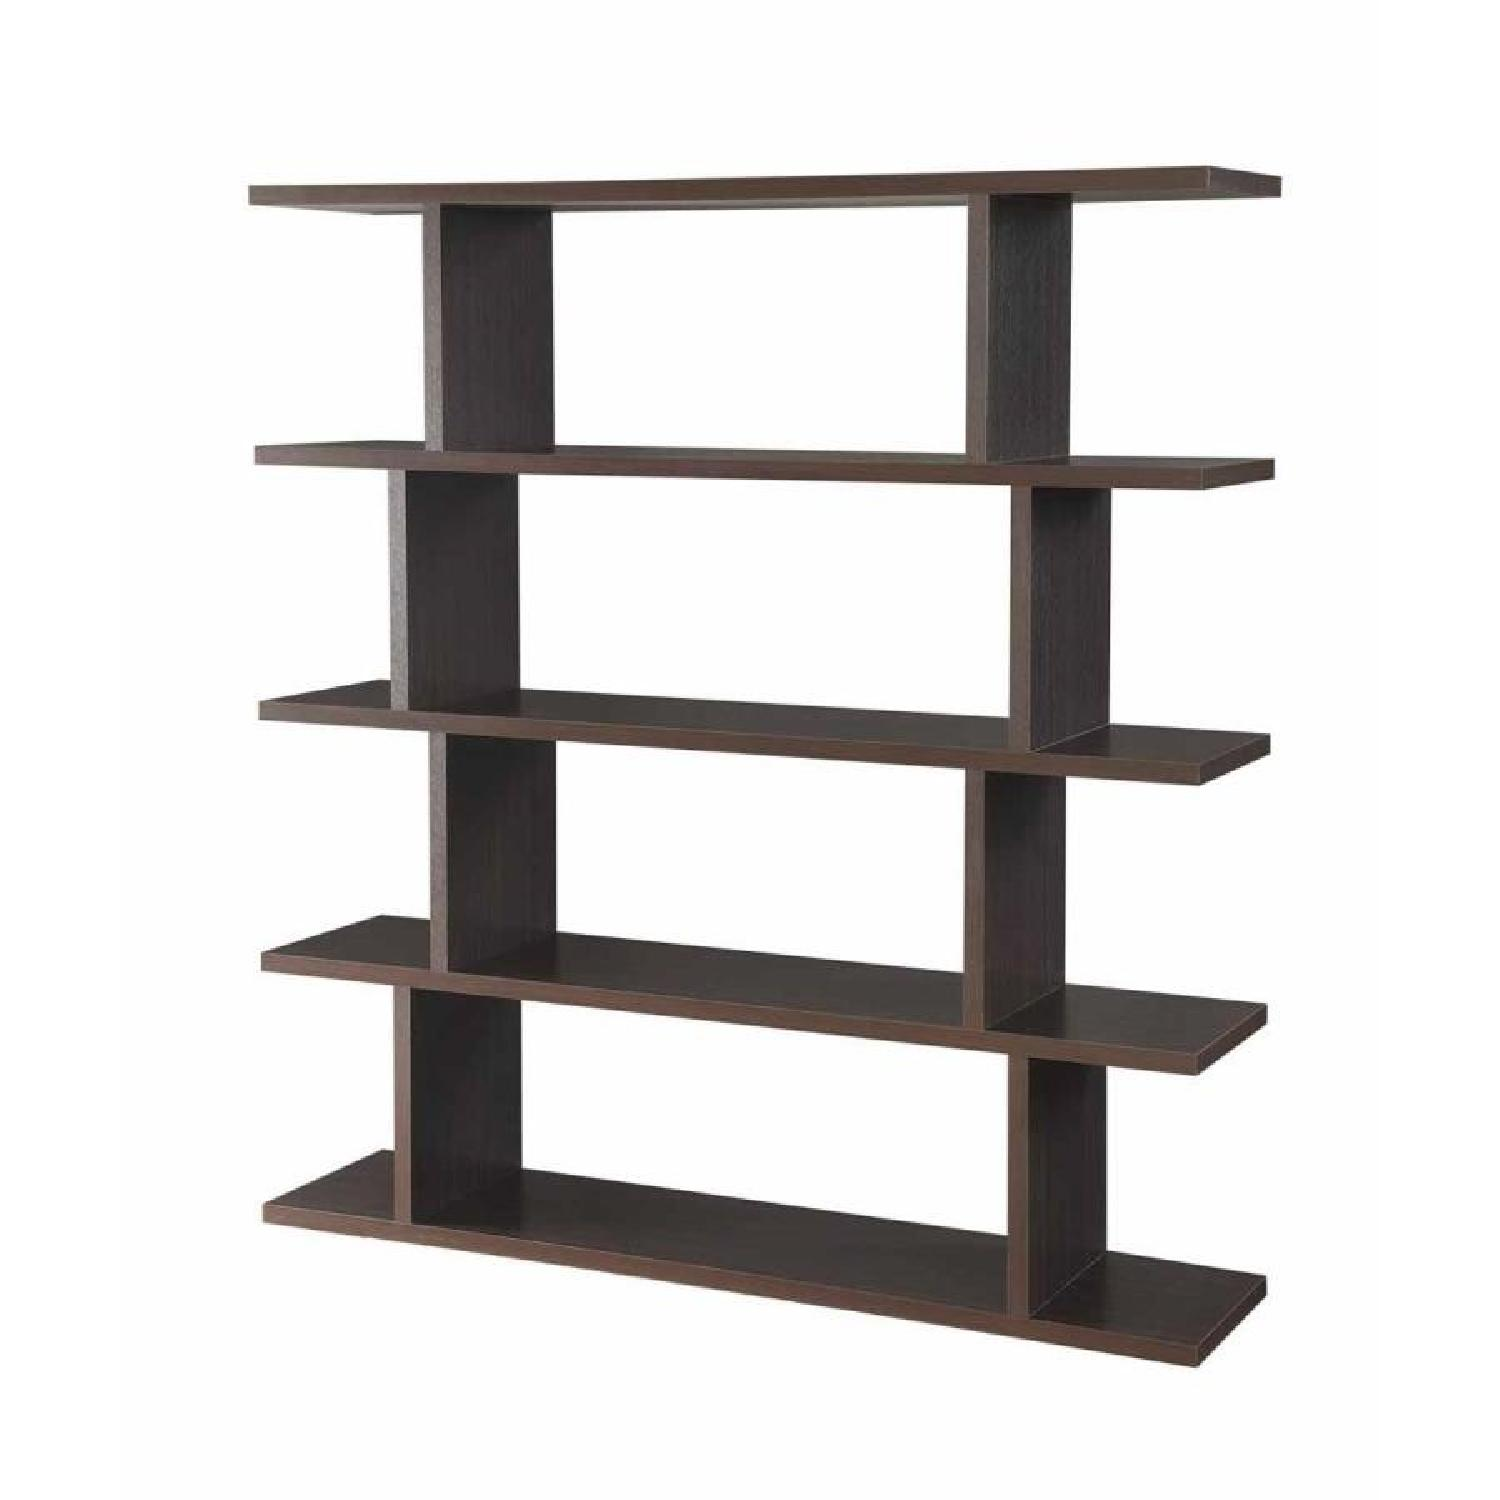 Book/Display Shelf in Cappuccino Finish - image-0